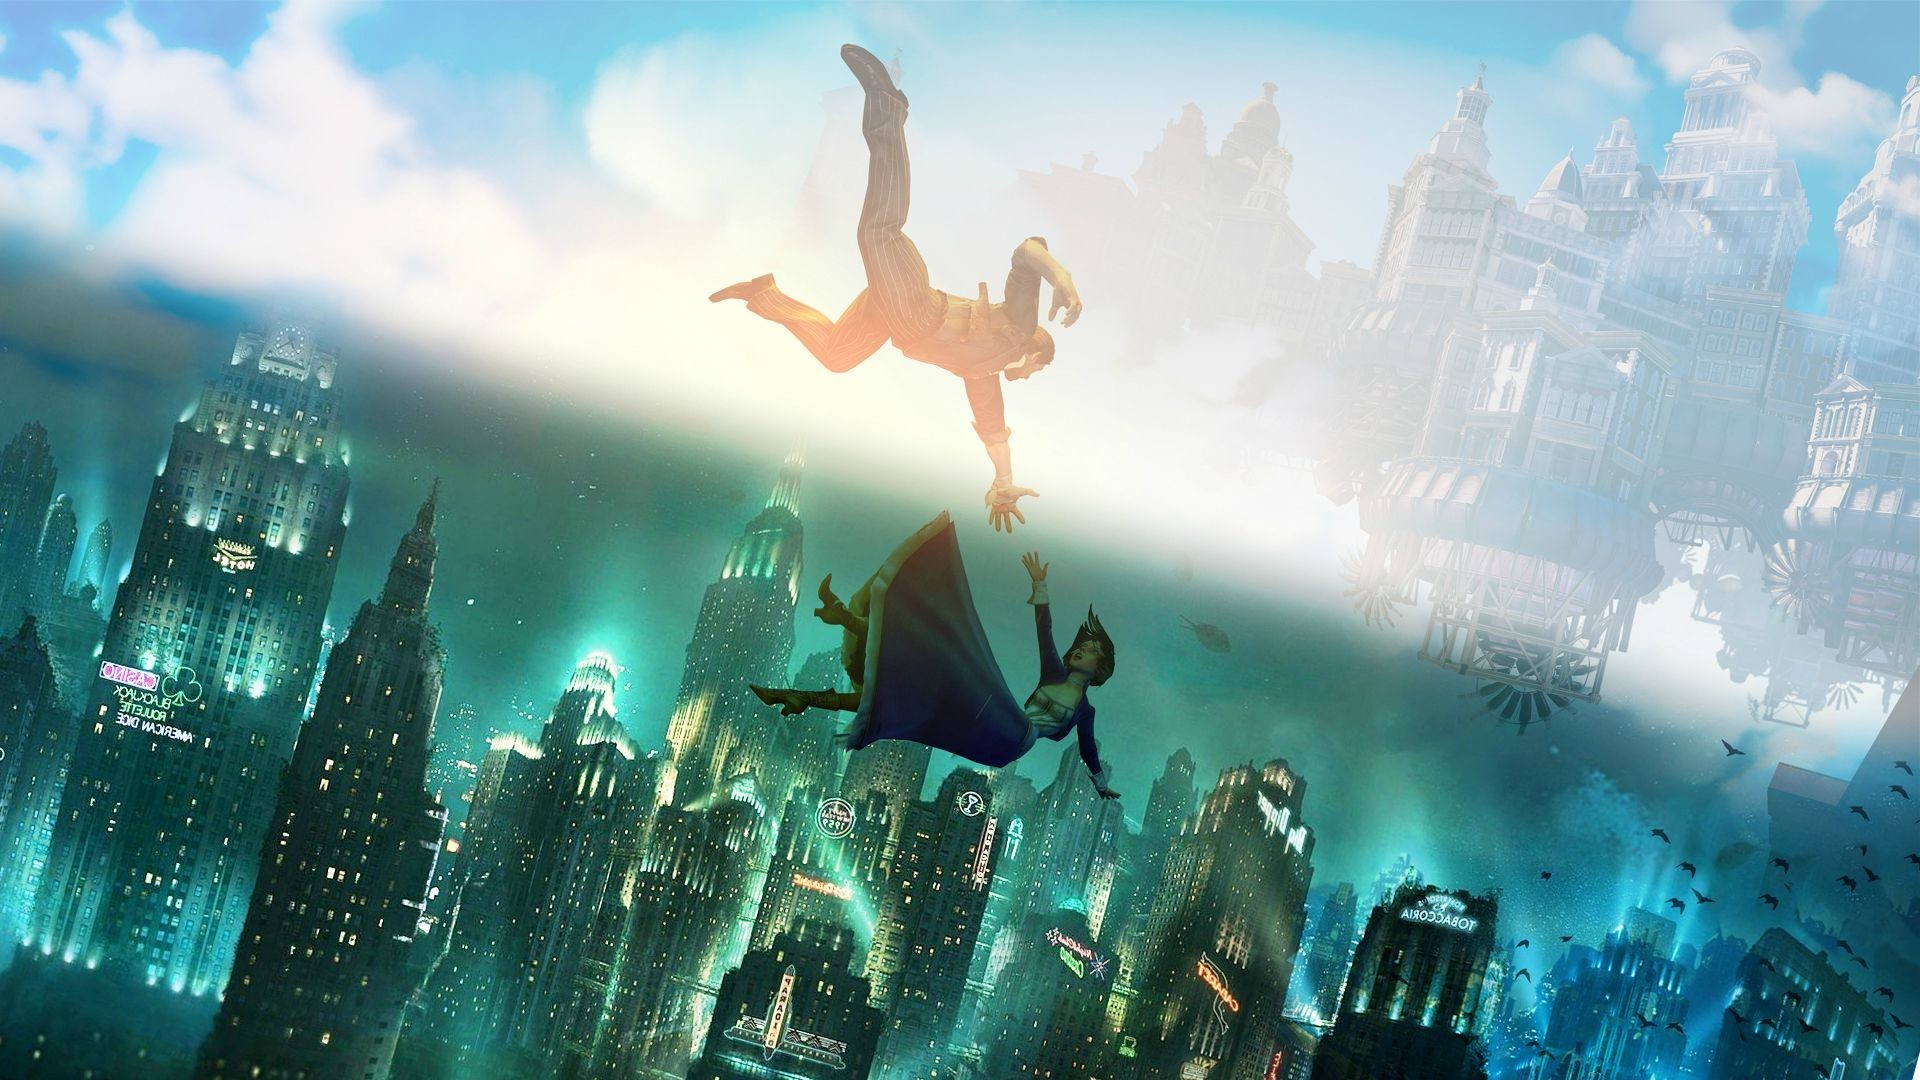 how to get bioshock 1 for free pc